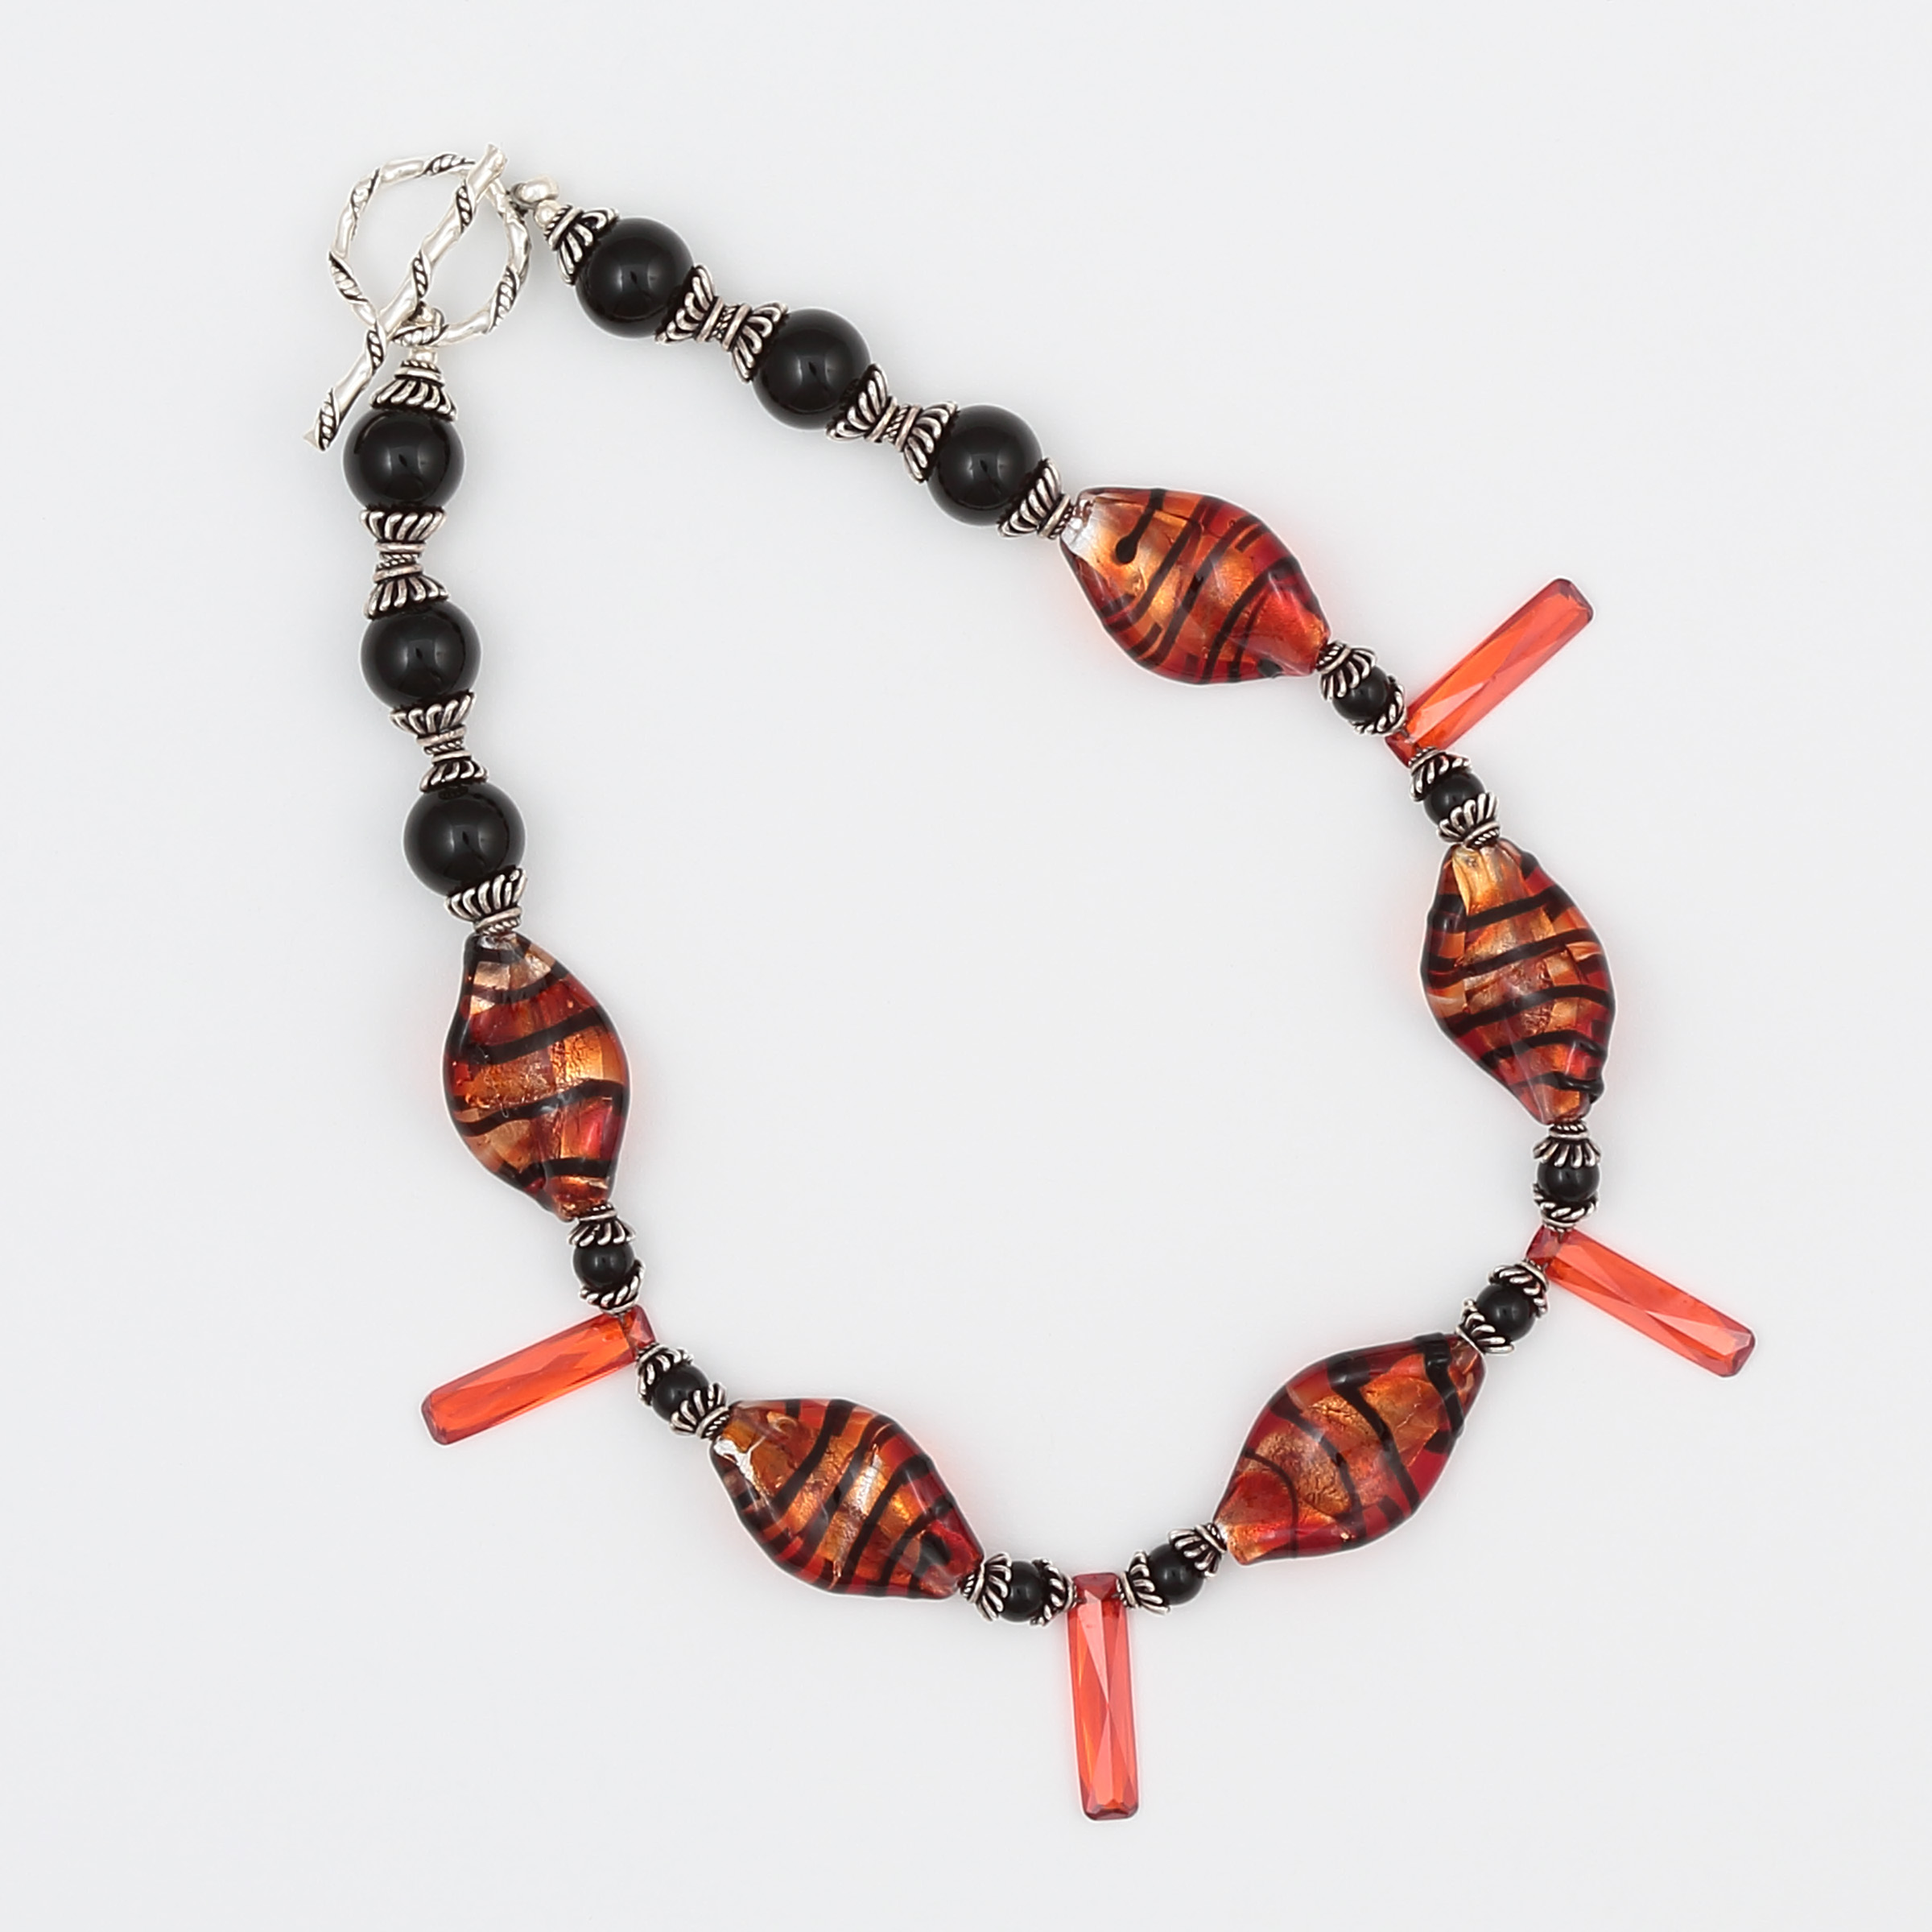 UNIQUITY NECKLACE- Orange and black art glass with onyx and sterling silver